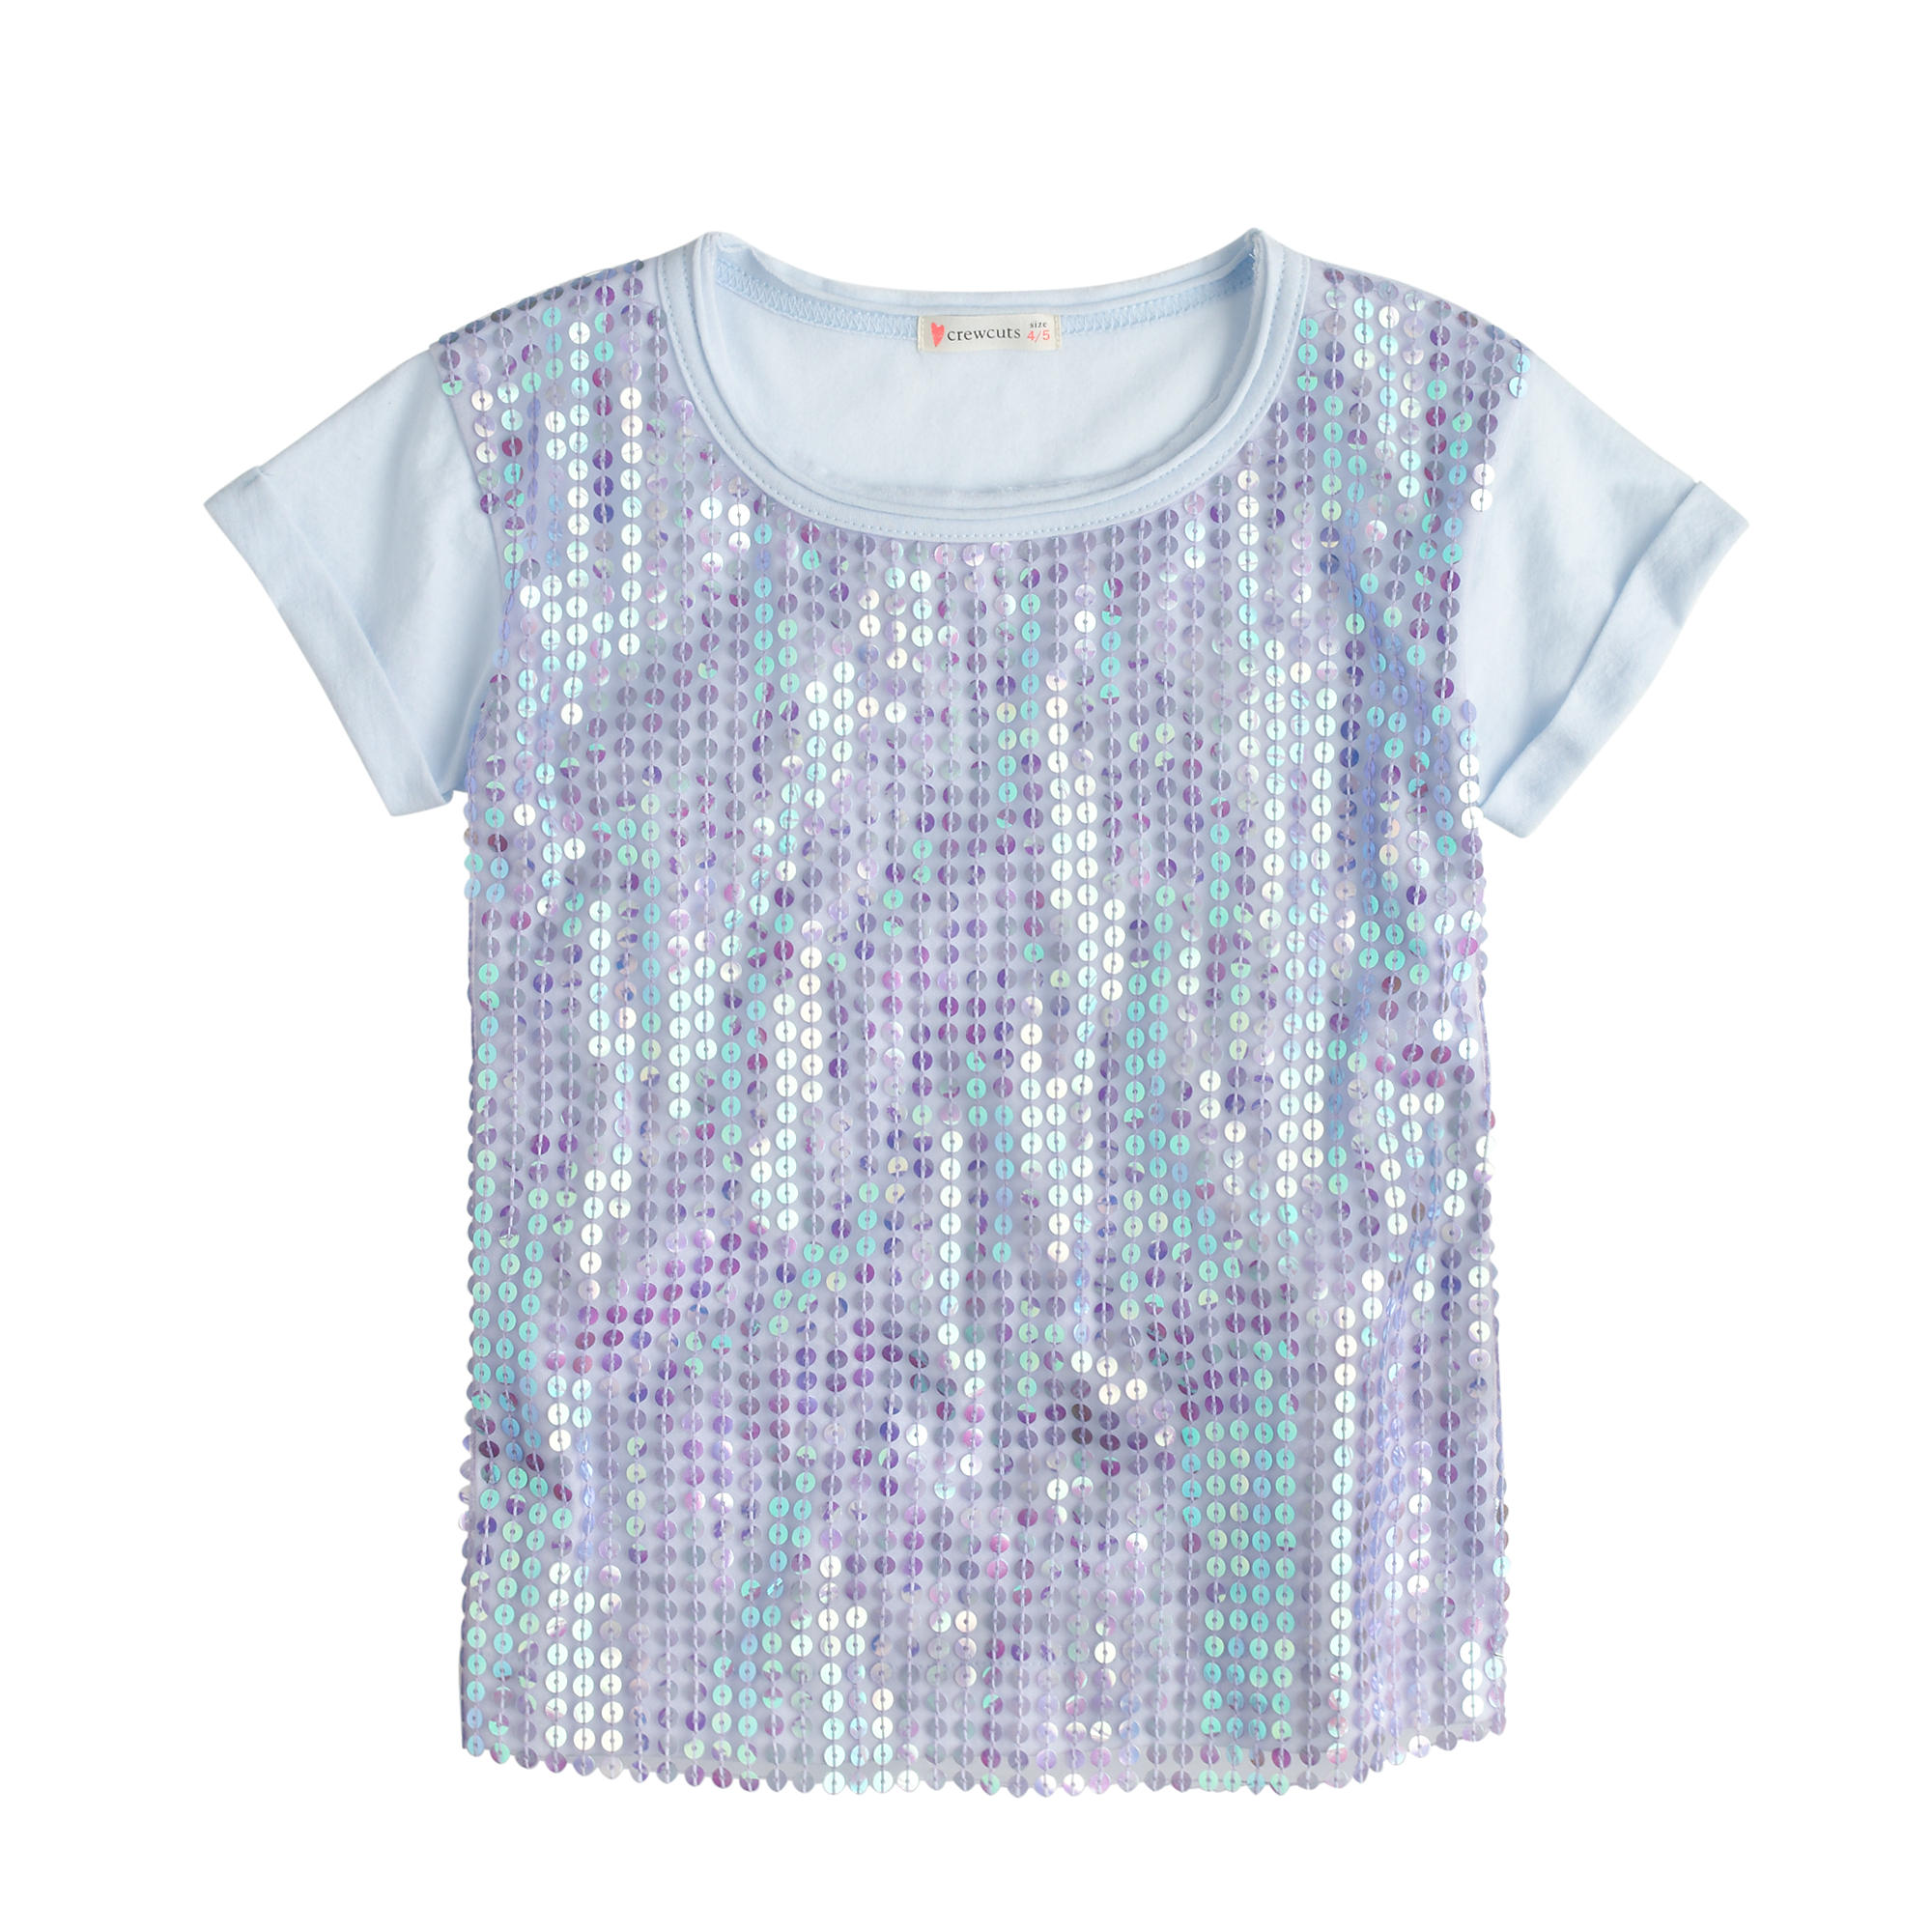 girls 39 sequin t shirt j crew ForGirls Sequin T Shirt